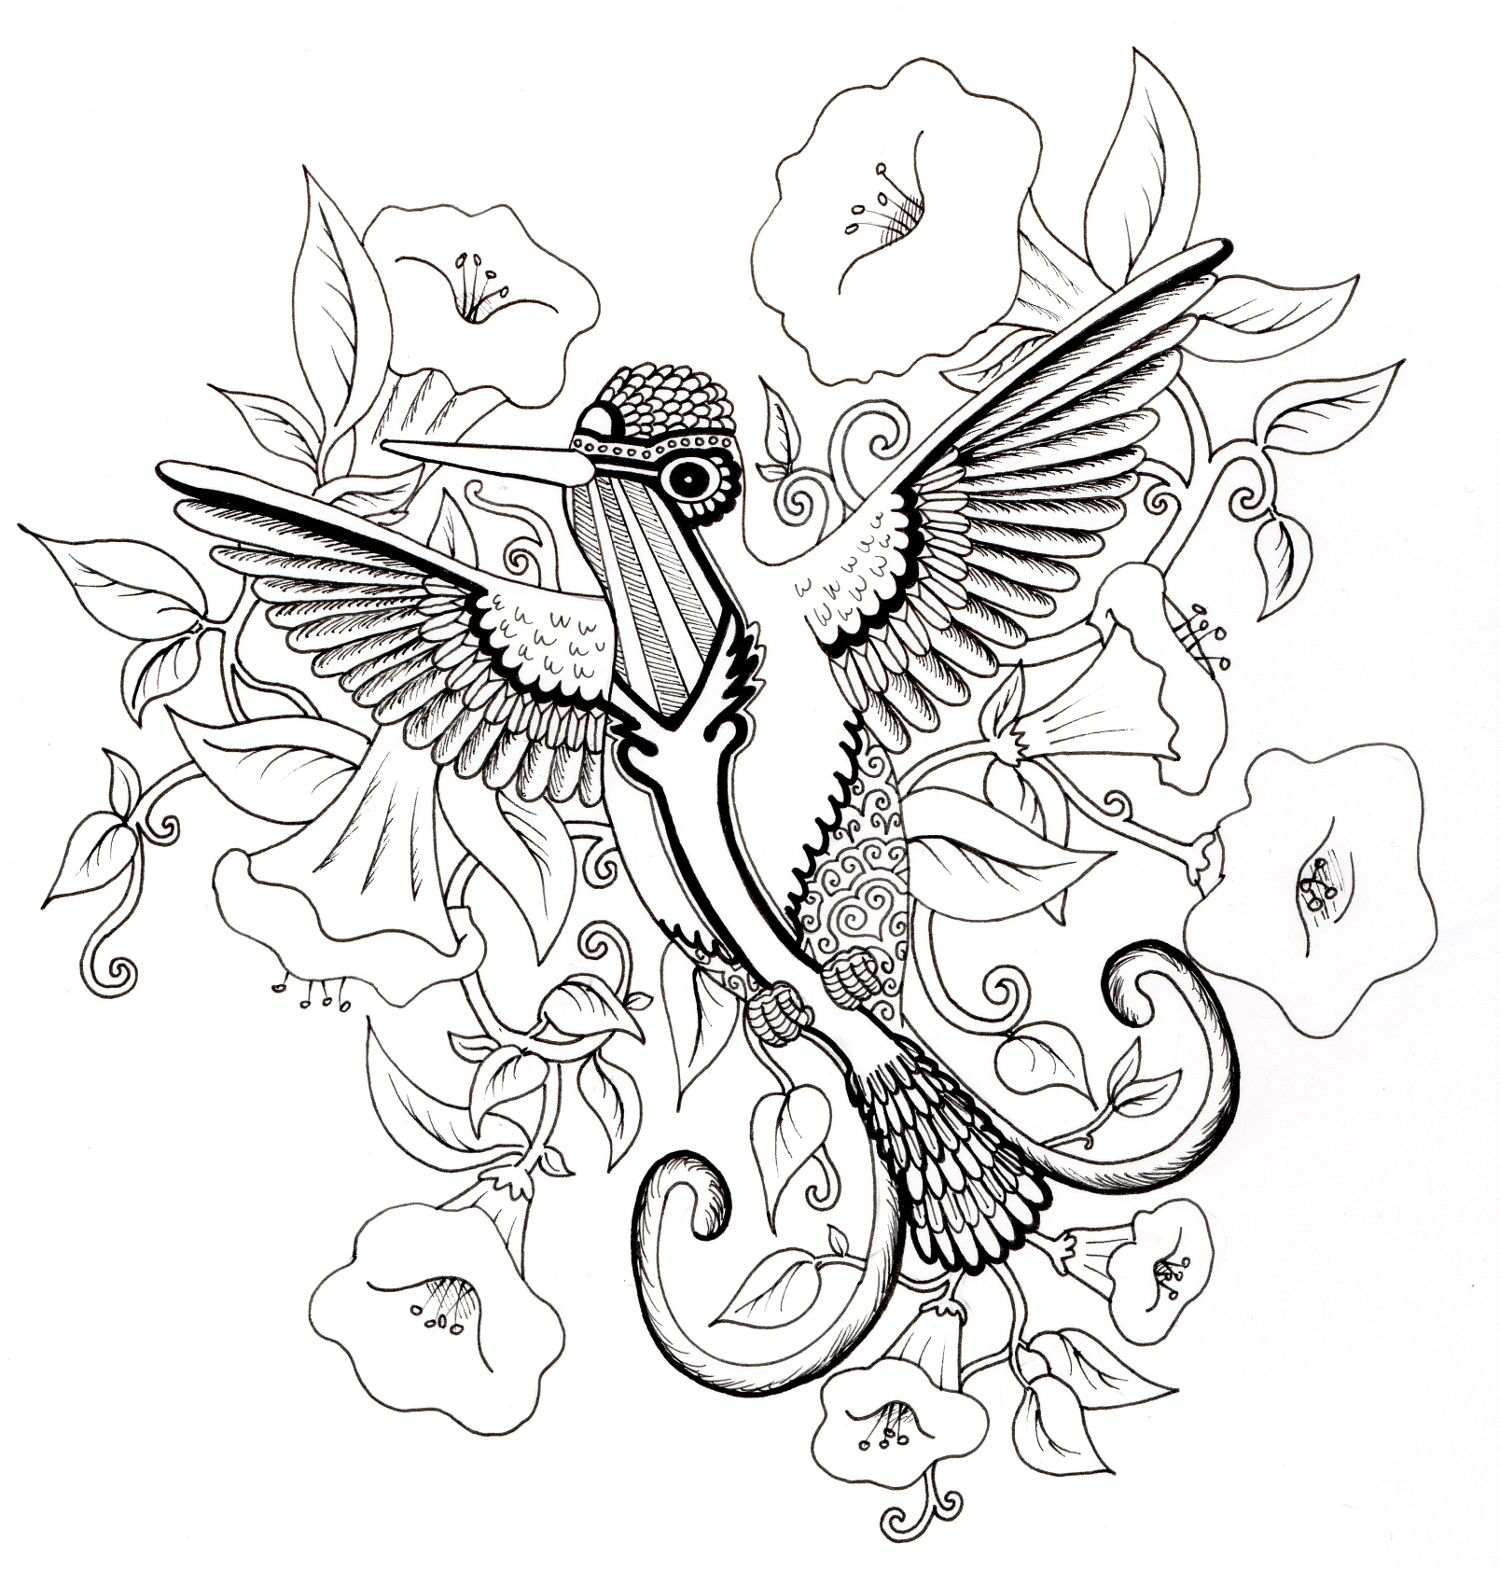 Hummingbird Design For Adult Colouring In I Am Working On Getting